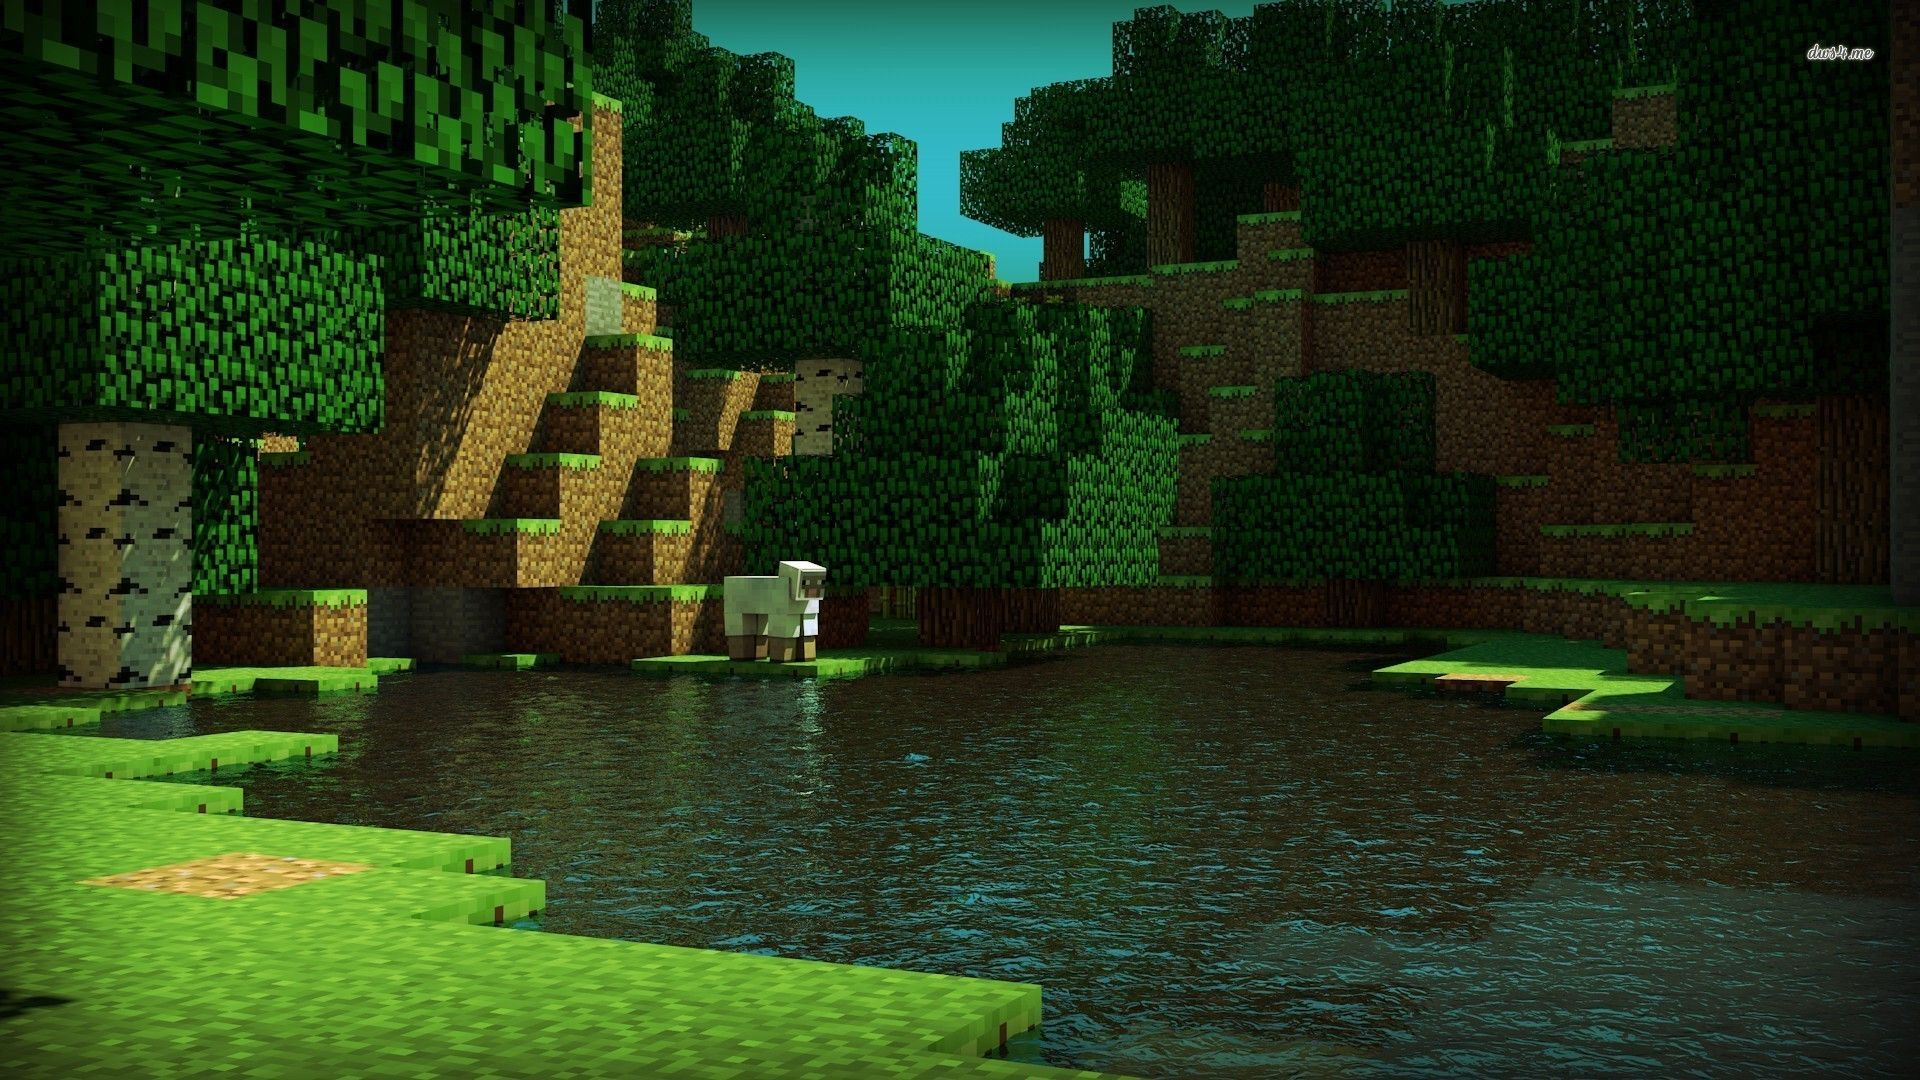 Minecraft Backgrounds Hd Wallpapers 2020 Minecraft Wallpaper